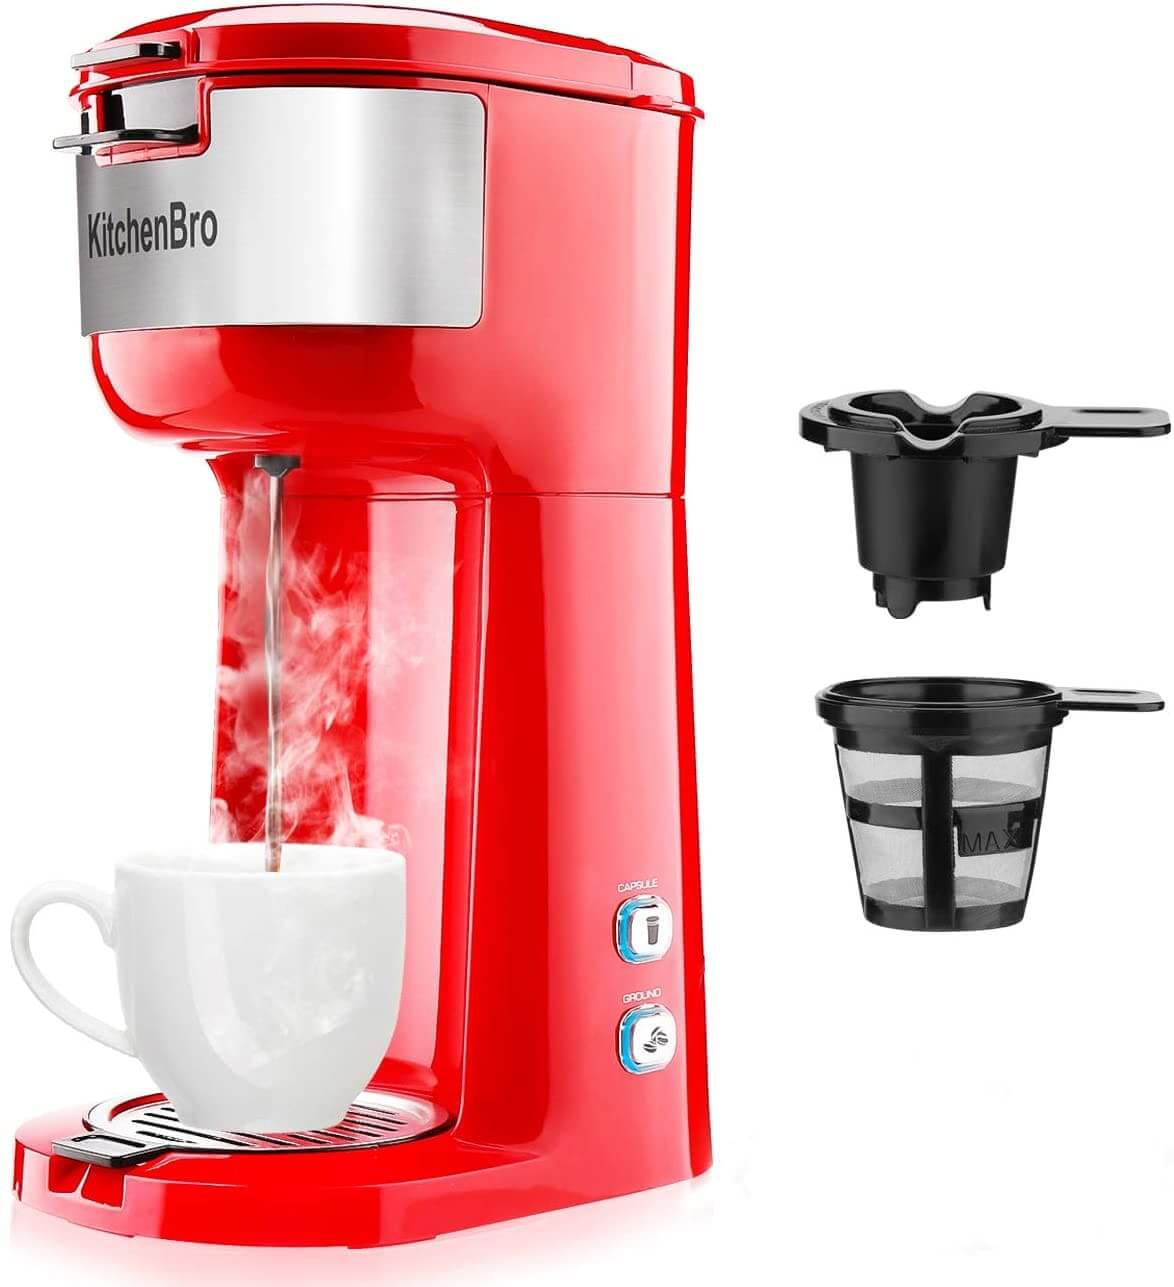 Kitchenbro coffee maker